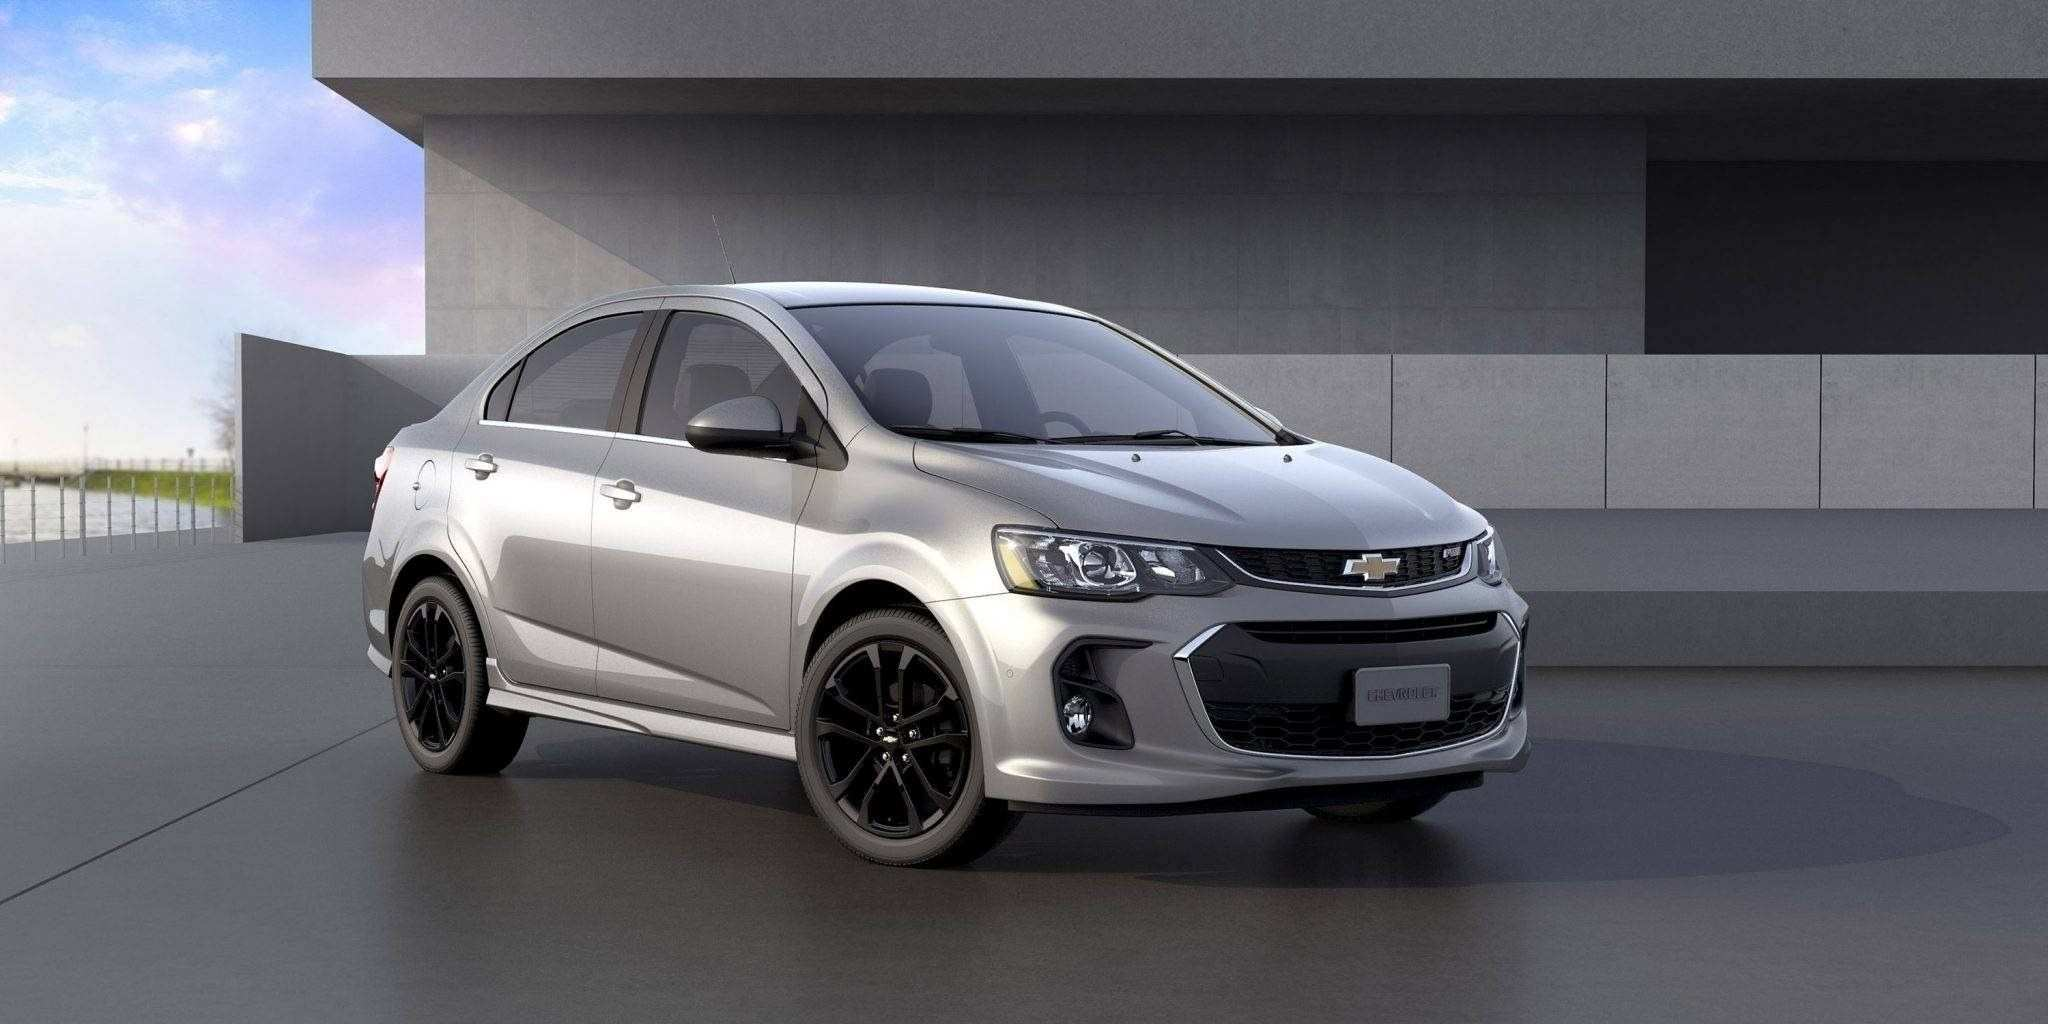 33 Gallery of 2020 Chevy Sonic Ss Ev Rs Pictures for 2020 Chevy Sonic Ss Ev Rs